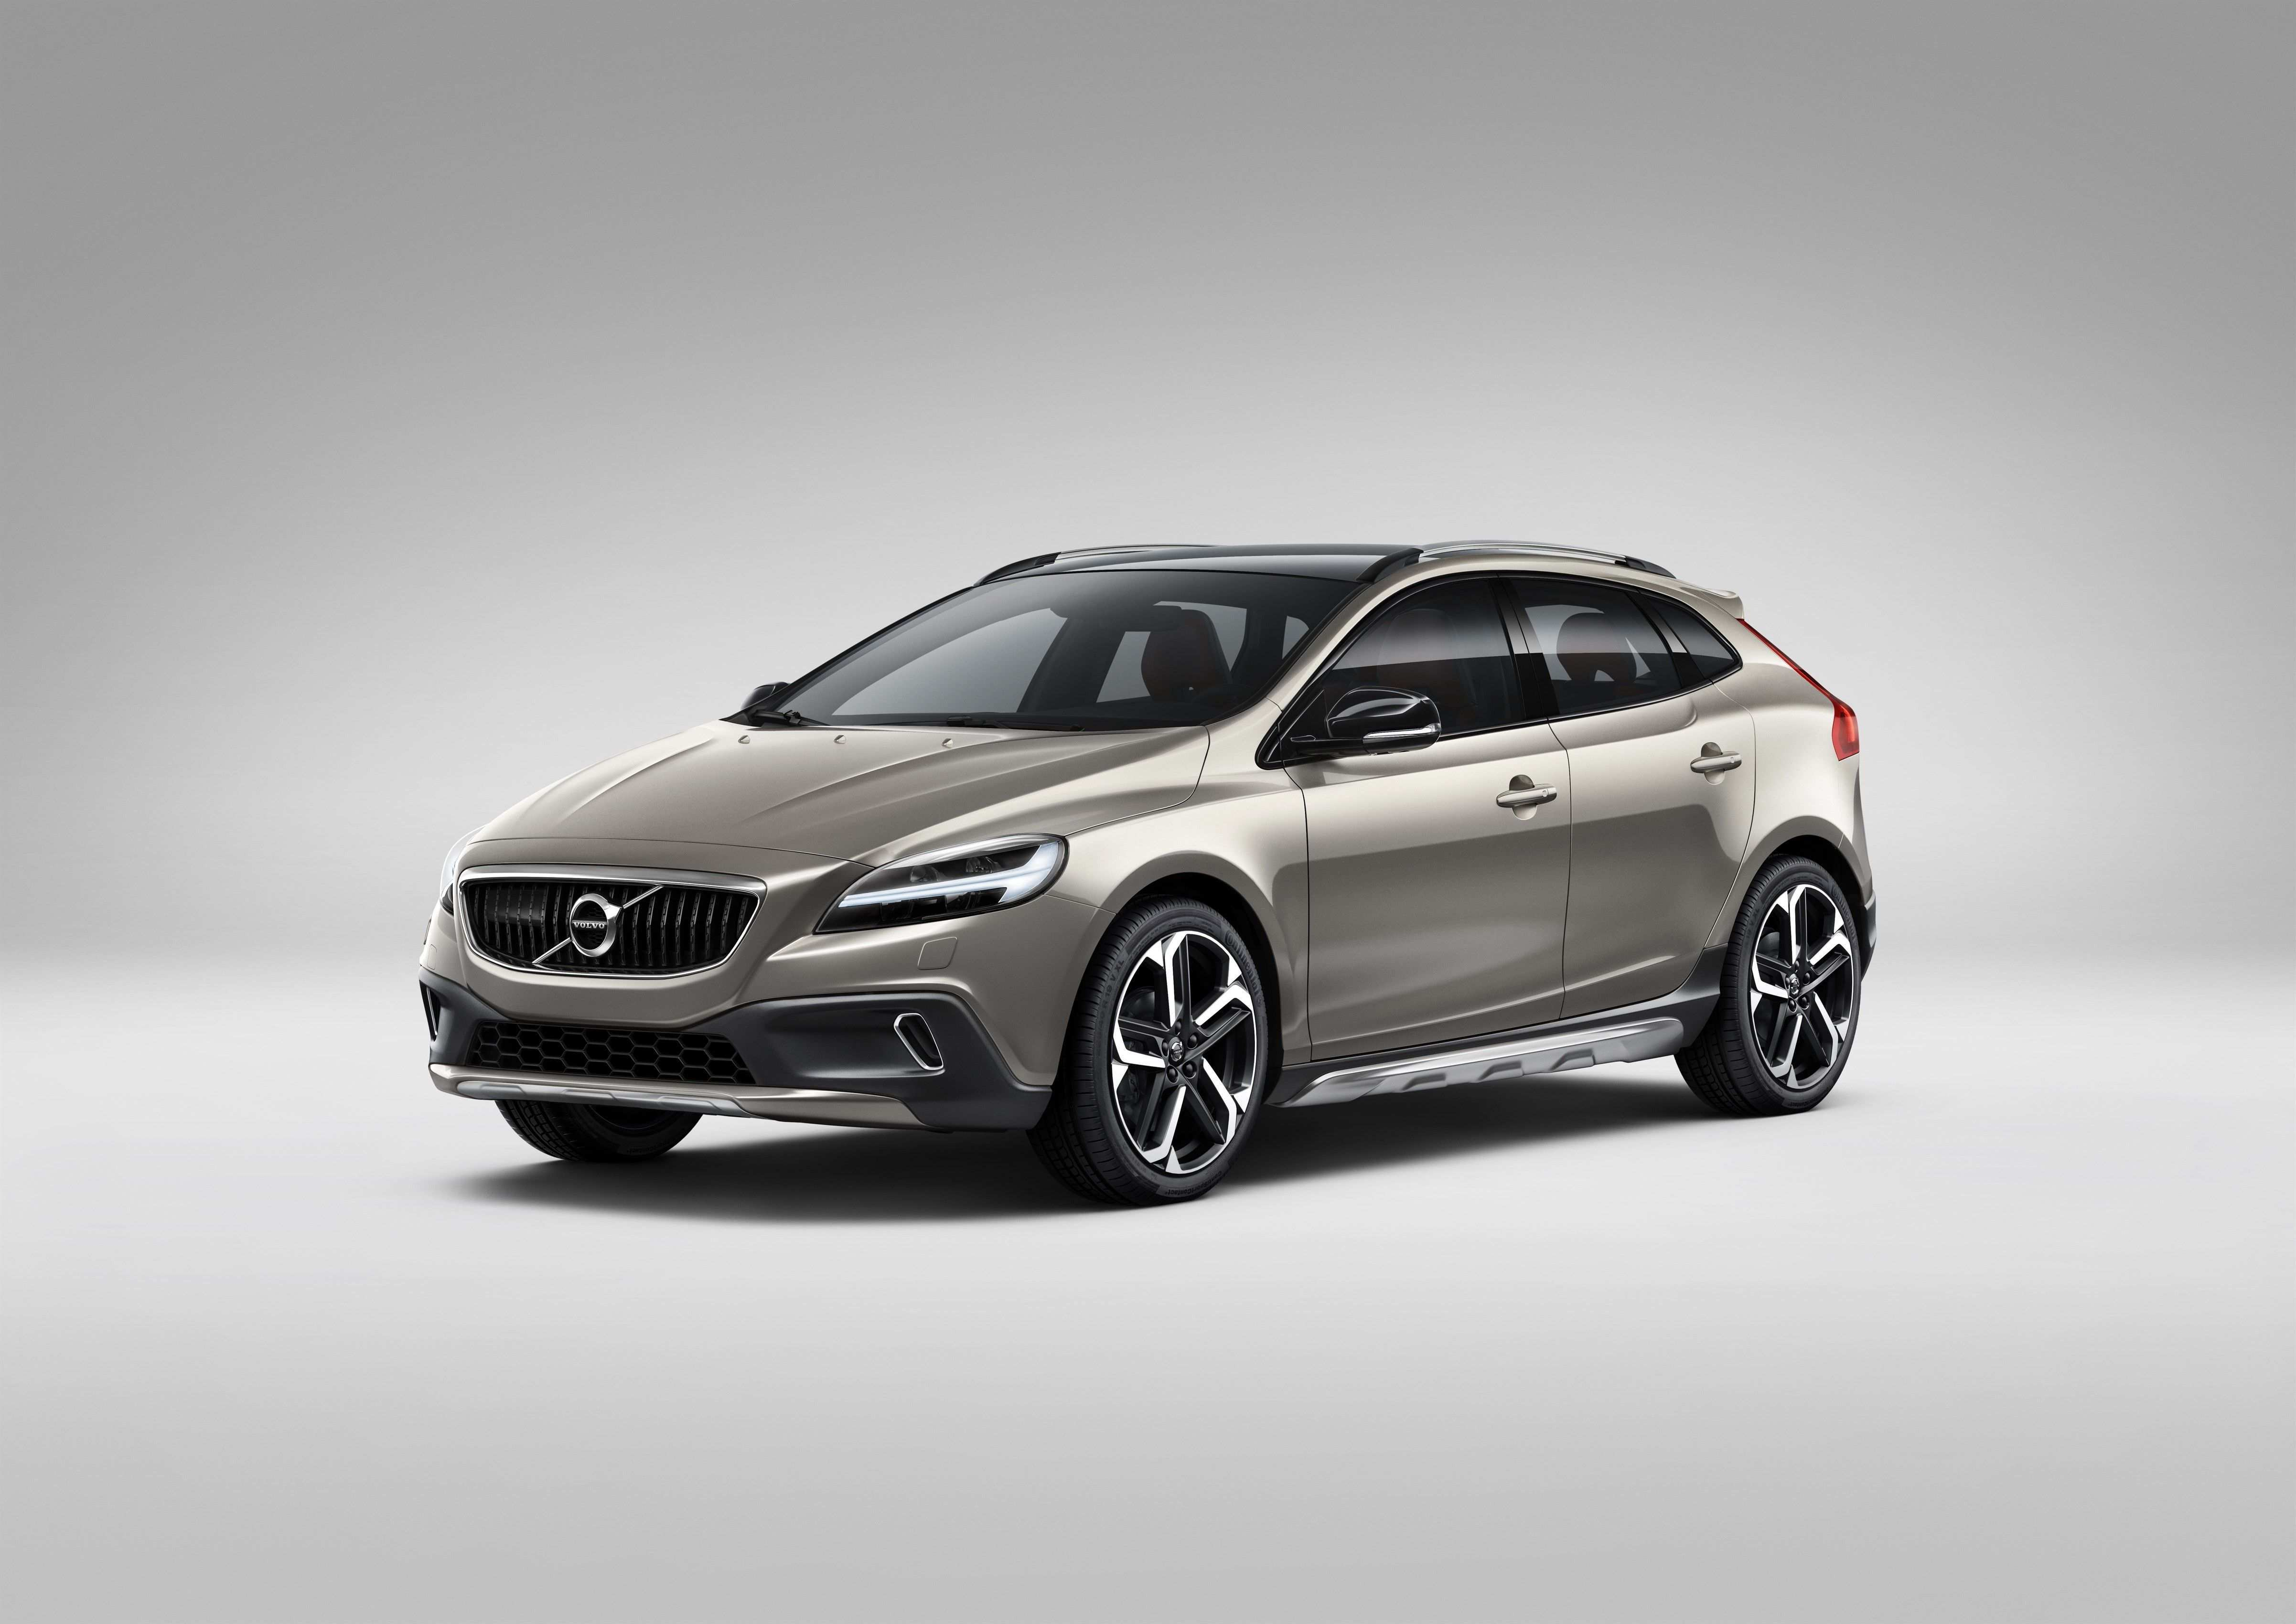 26 Gallery of New Volvo V40 2019 Release Date Concept Redesign And Review Release Date by New Volvo V40 2019 Release Date Concept Redesign And Review